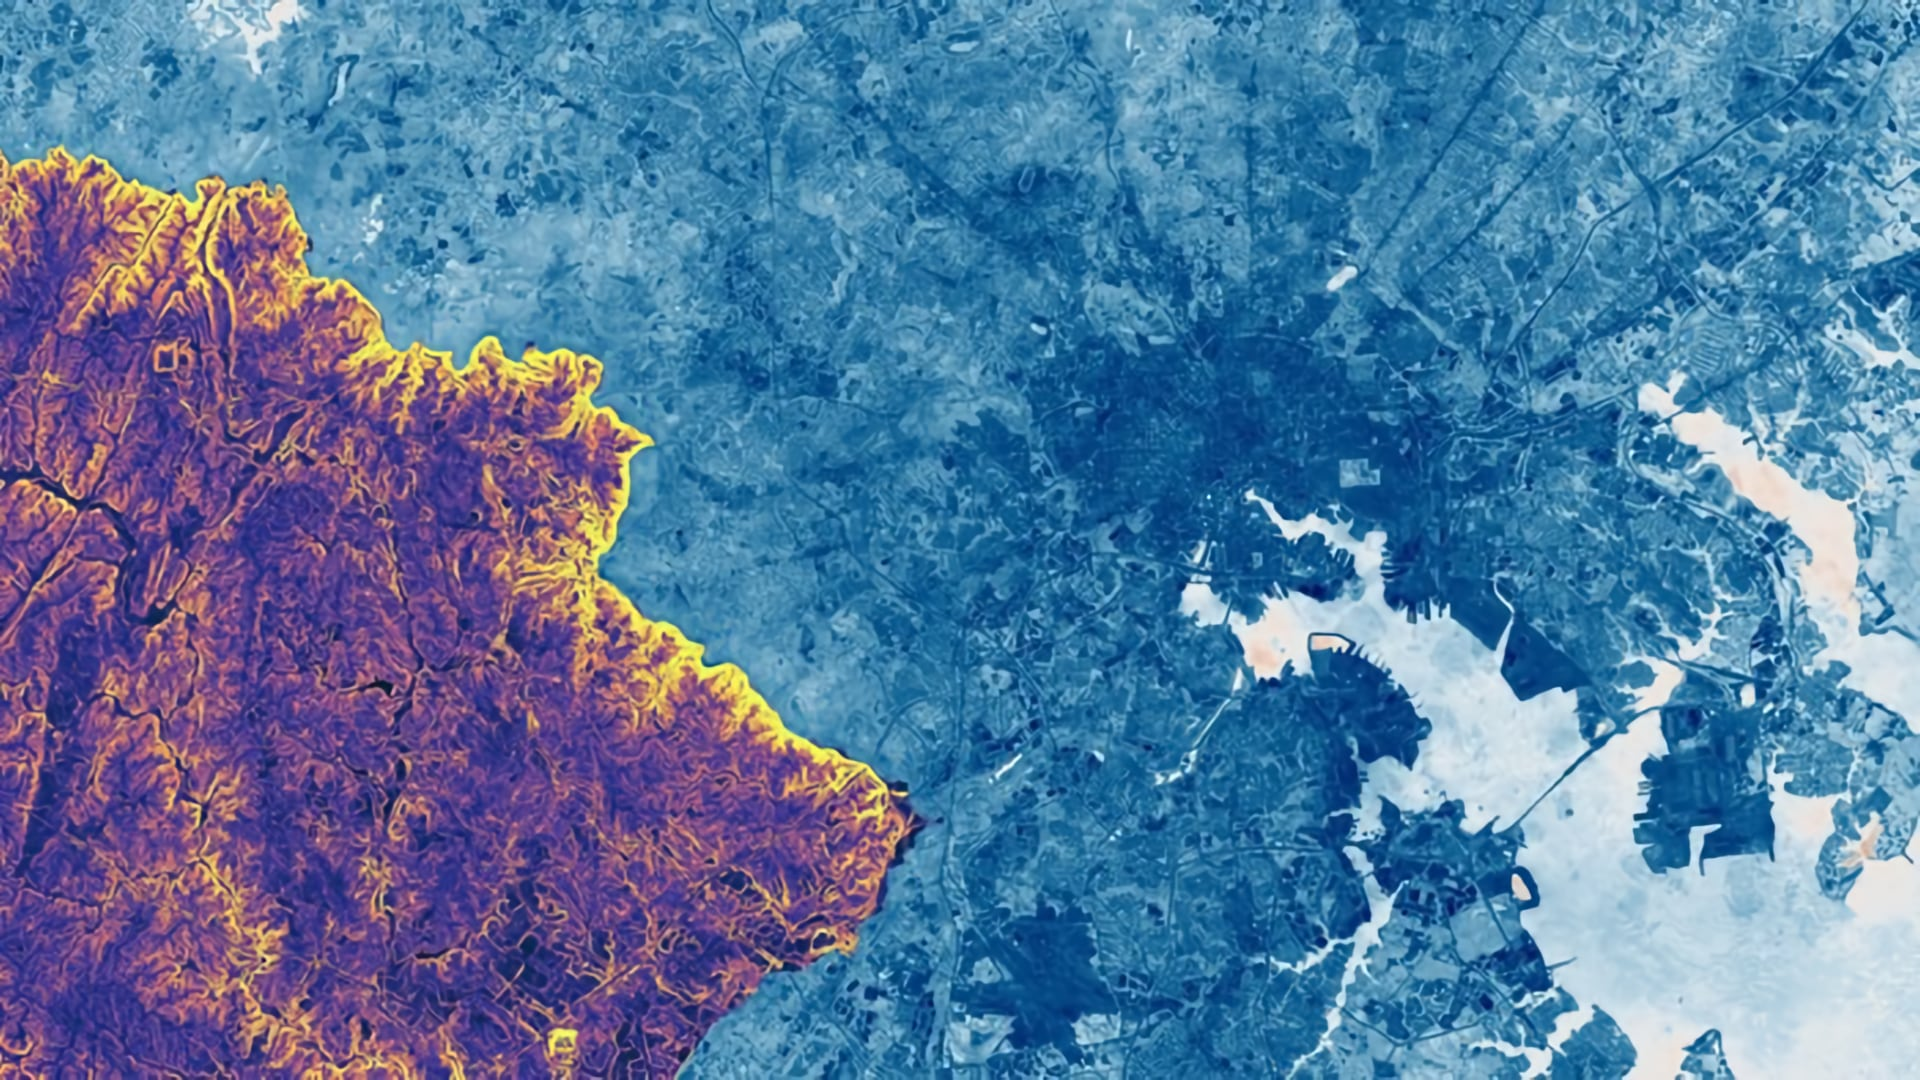 NDWI Composite from Landsat 8 tier 1 (2019) is shown with surface slope, derived from a statewide DEM of Maryland (2011), clipped to the border of Howard County, overlaid. The greater Baltimore area is shown; the merge of the Patapsco River and the Chesapeake Bay is seen lower right. Lighter shades of blue indicate higher surface and plant water content. In regards to the DEM, yellow shows a high degree of slope, while purple shows low slope. The convergence points of several watersheds along the Patapsco river (bright yellow border) can be identified, including the Tiber-Hudson watershed at Ellicott City. High NDWI values and steep slopes indicate areas in danger of flooding due to runoff.